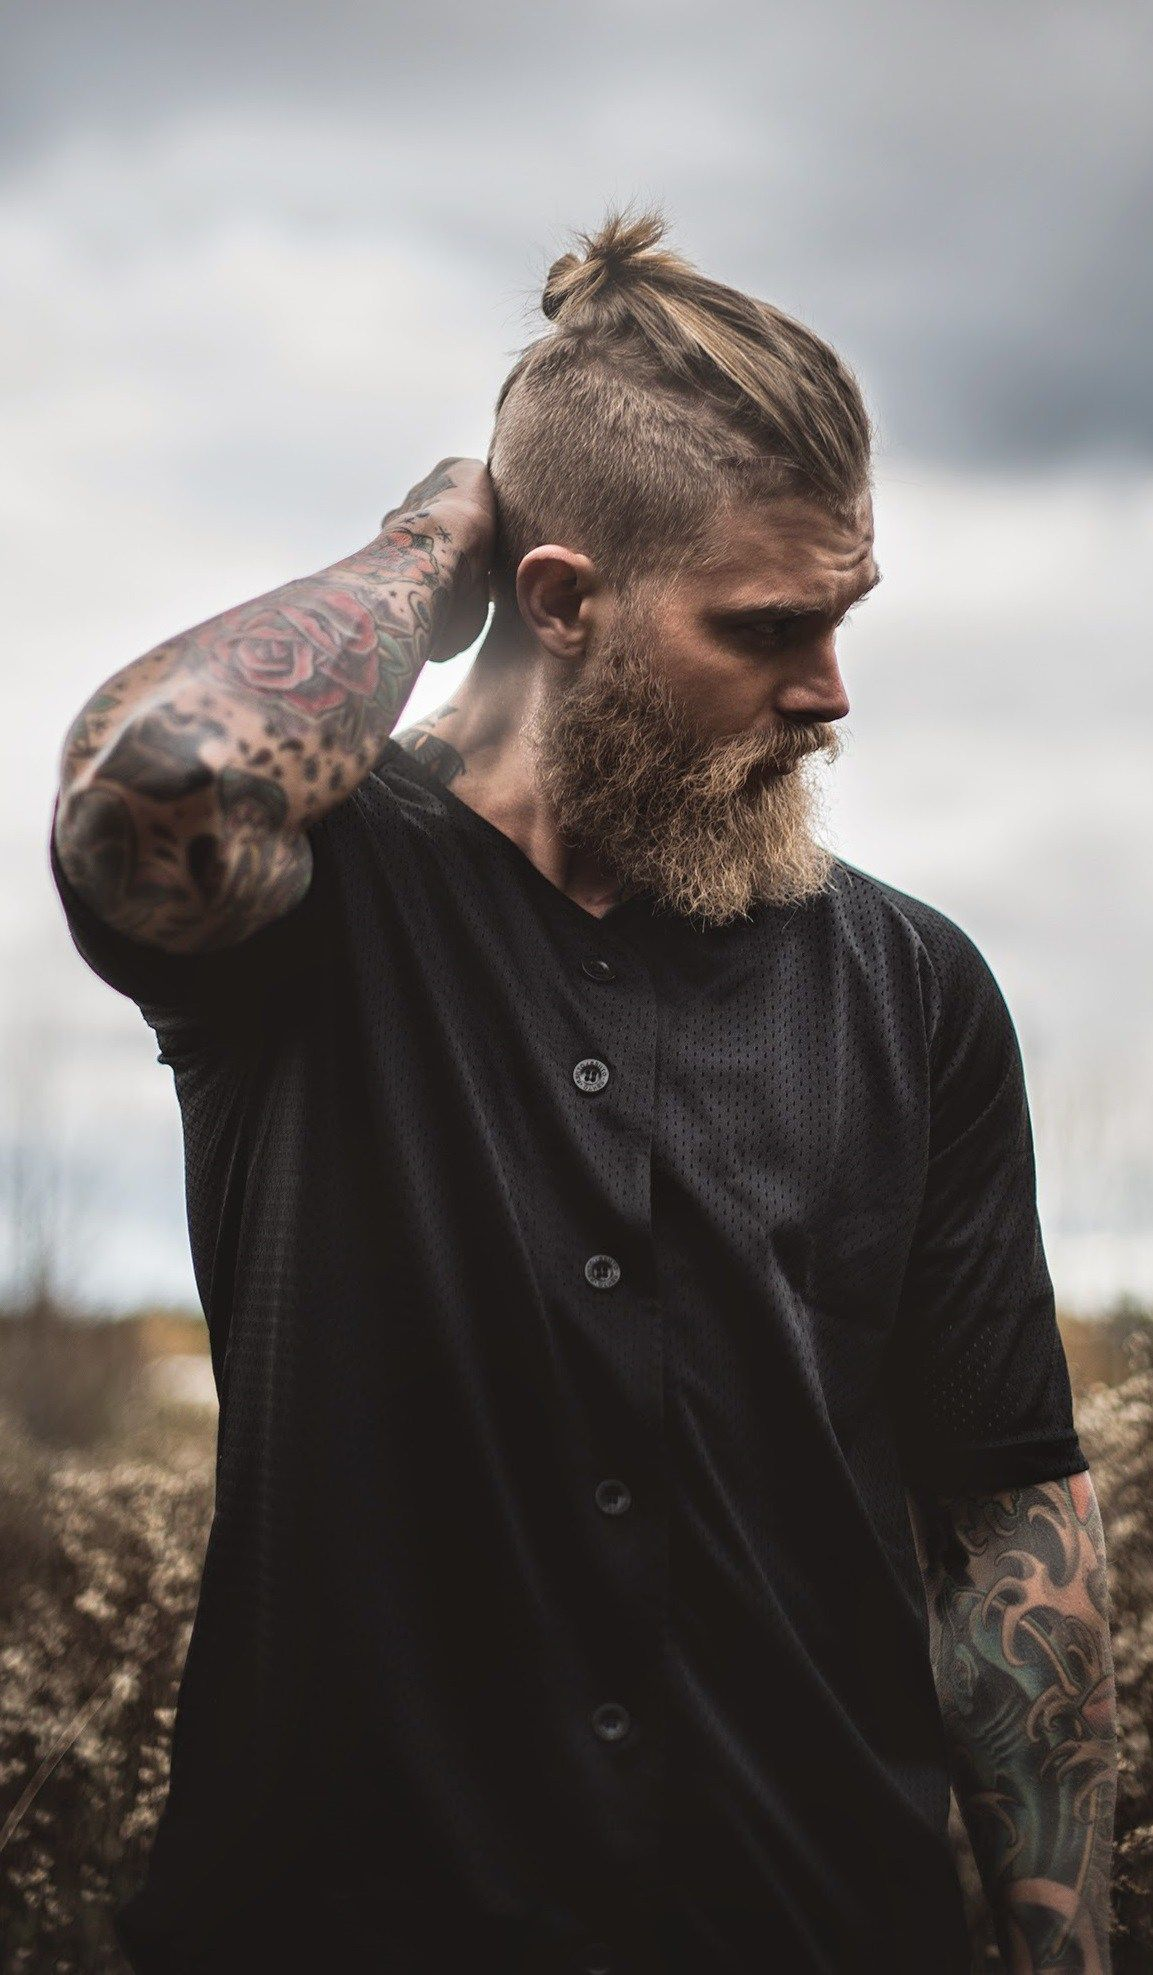 Man Bun For Short Hair? Hell Yes!